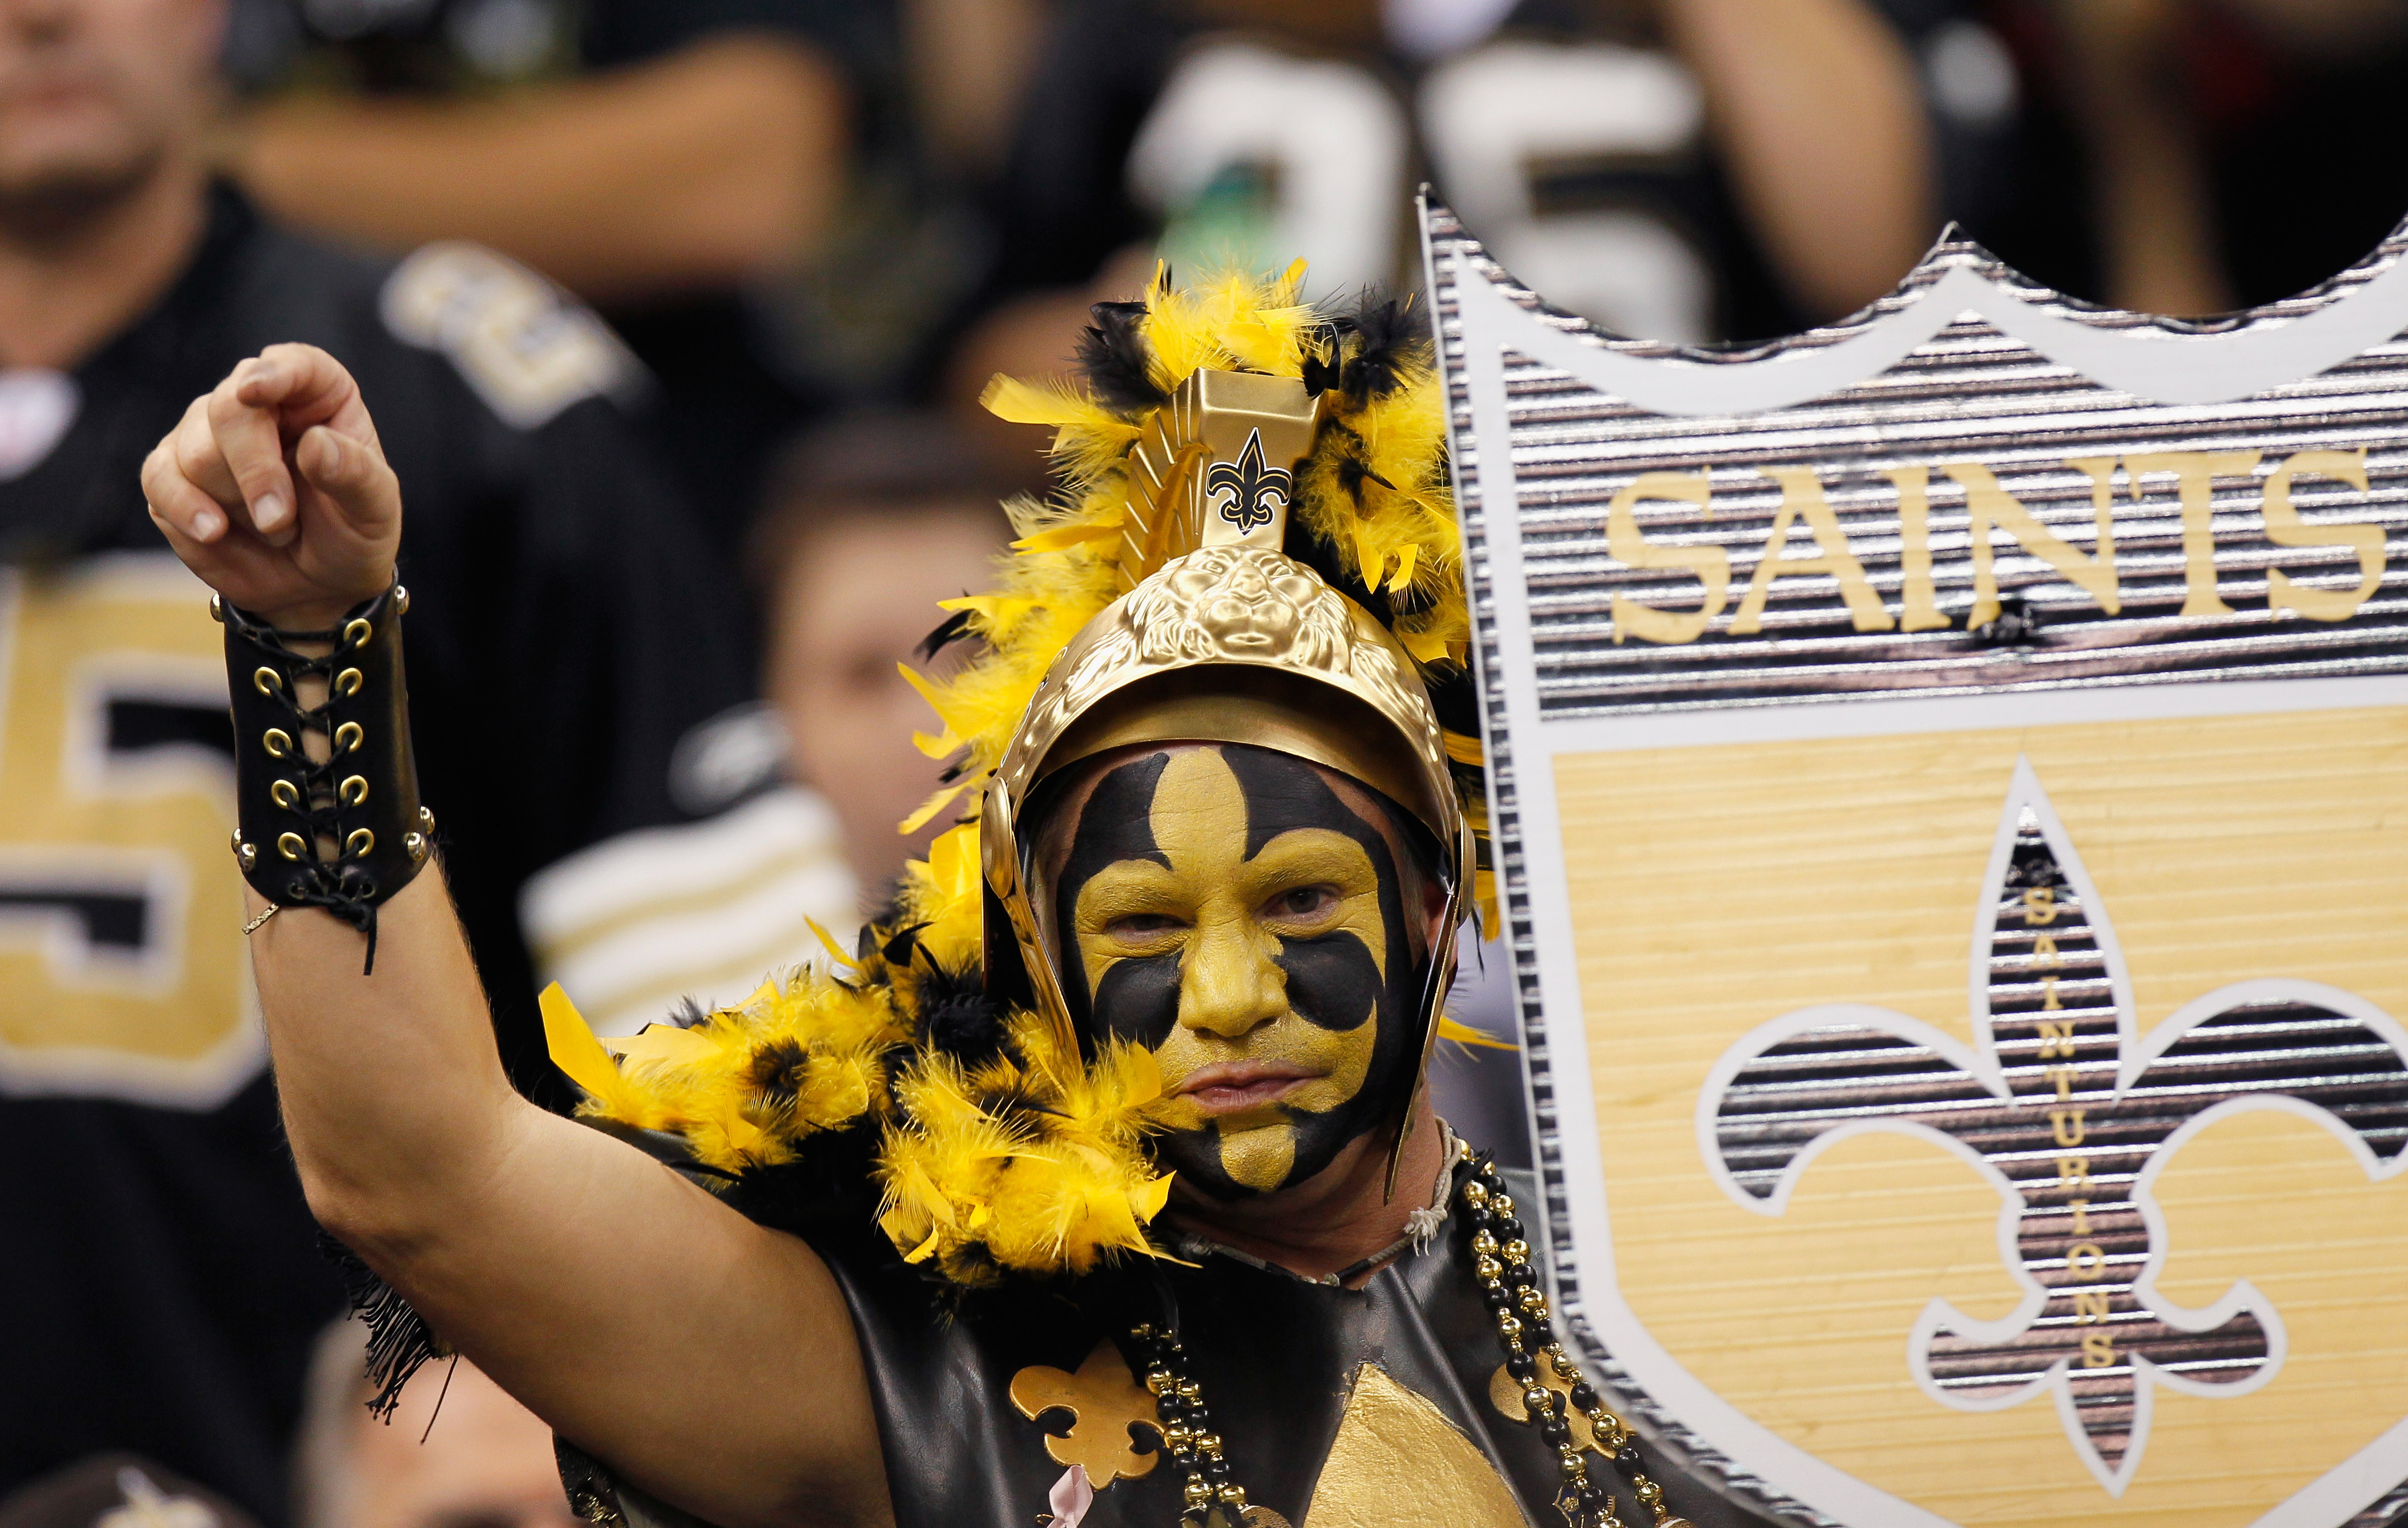 NEW ORLEANS - NOVEMBER 21:  A fan of the New Orleans Saints cheers against the Seattle Seahawks at Louisiana Superdome on November 21, 2010 in New Orleans, Louisiana.  (Photo by Kevin C. Cox/Getty Images)